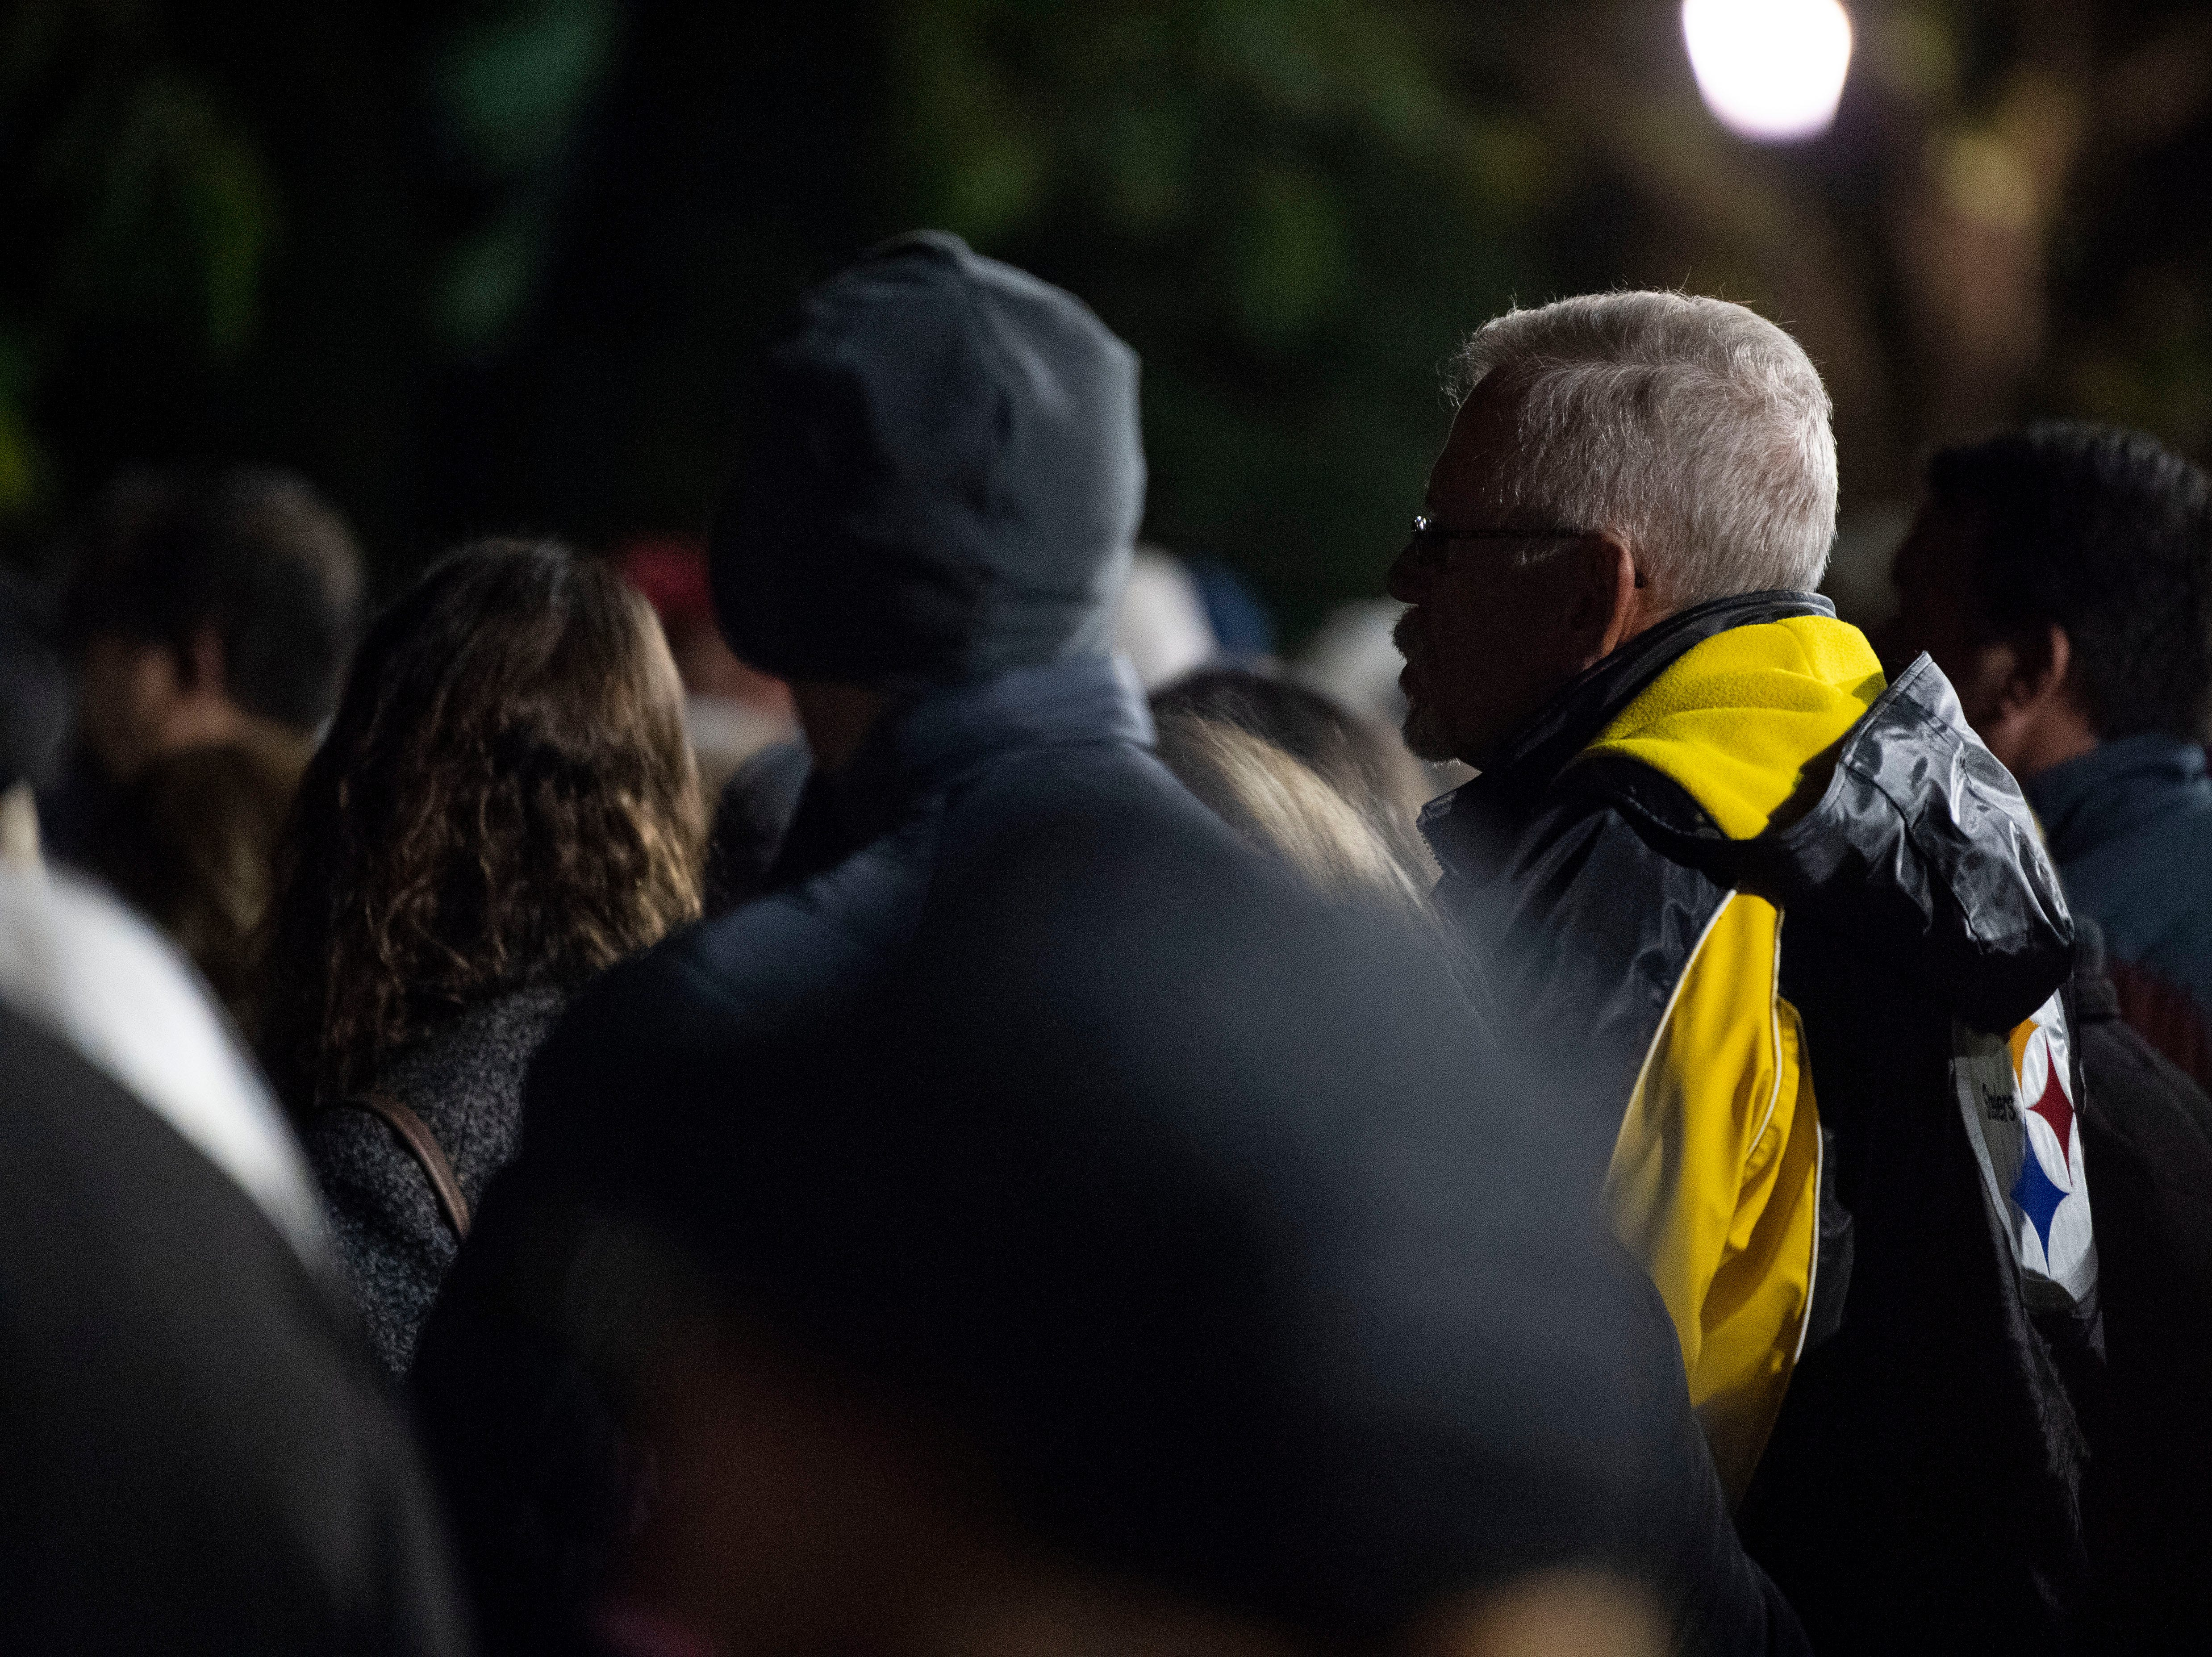 People in attendance look on during a candlelight vigil in front of city hall on Monday, Oct. 29, 2018. Hundreds of people gathered for the 'York Vigil against Hate,' mourning the 11 dead from the weekend shooting at Tree of Life synagogue in Pittsburgh.